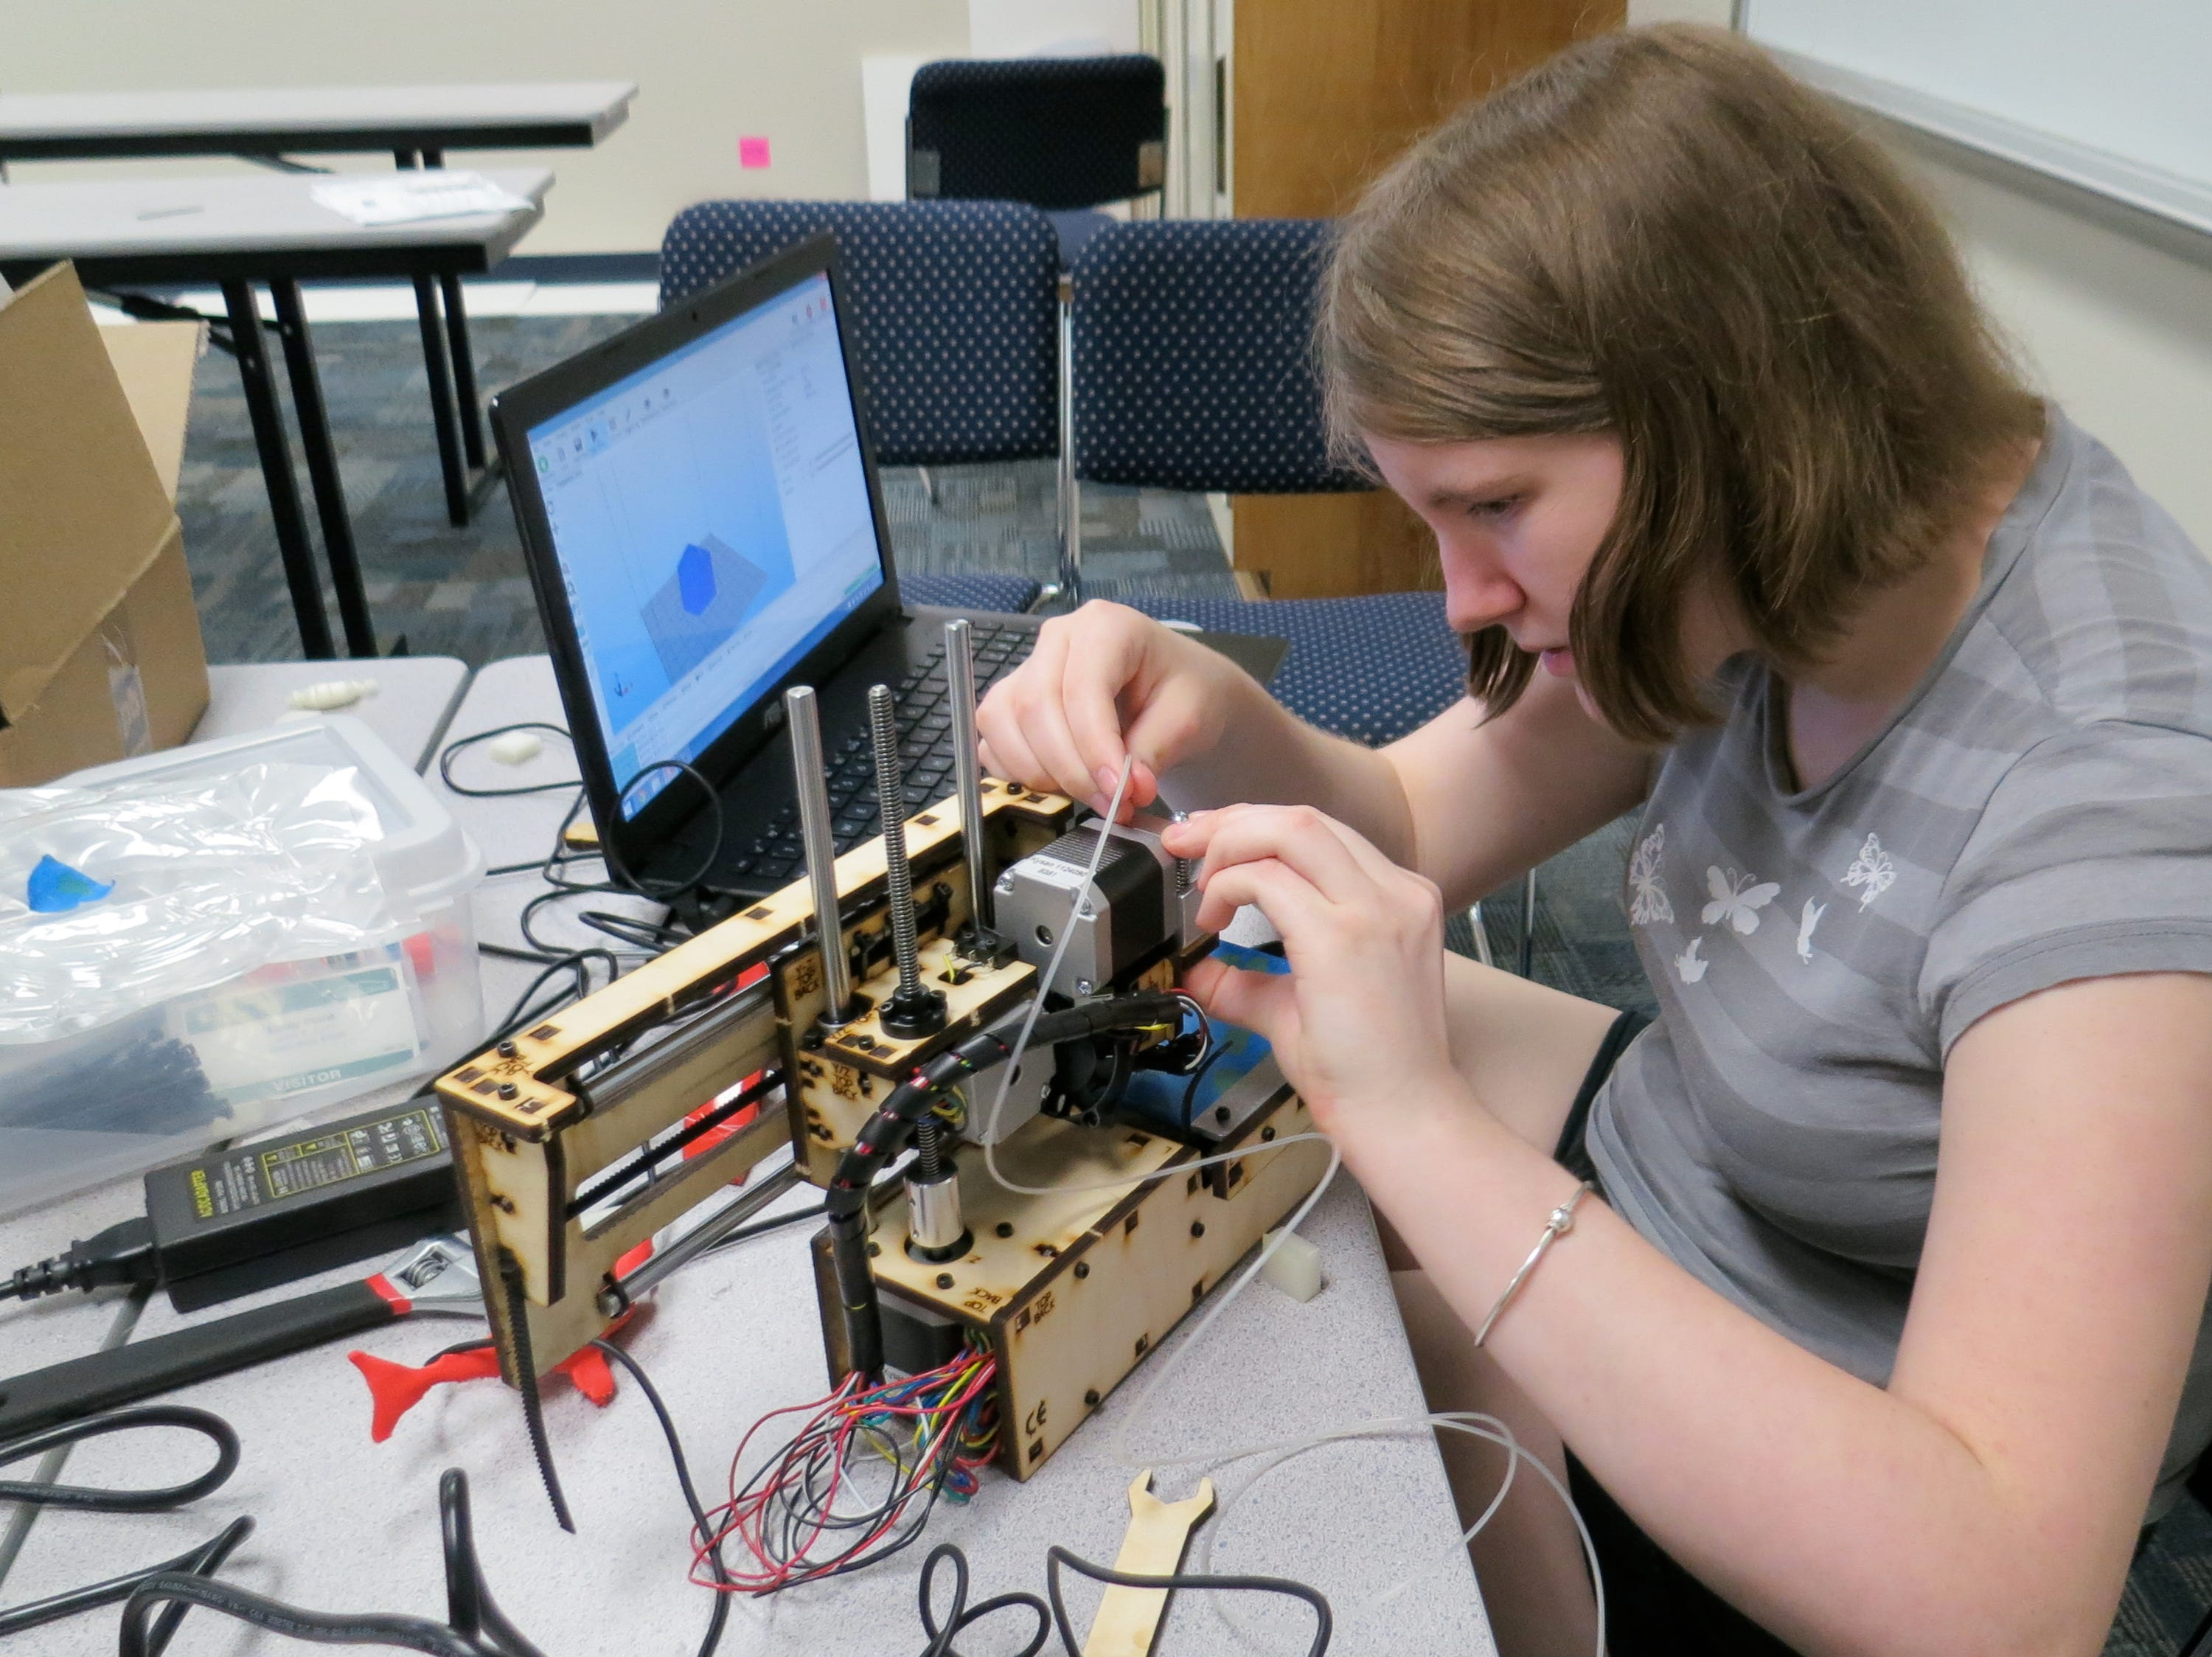 Theresa Keller from Karns Middle School gets ready to print a 3-D object during the Pellissippi State academic camp for young women.